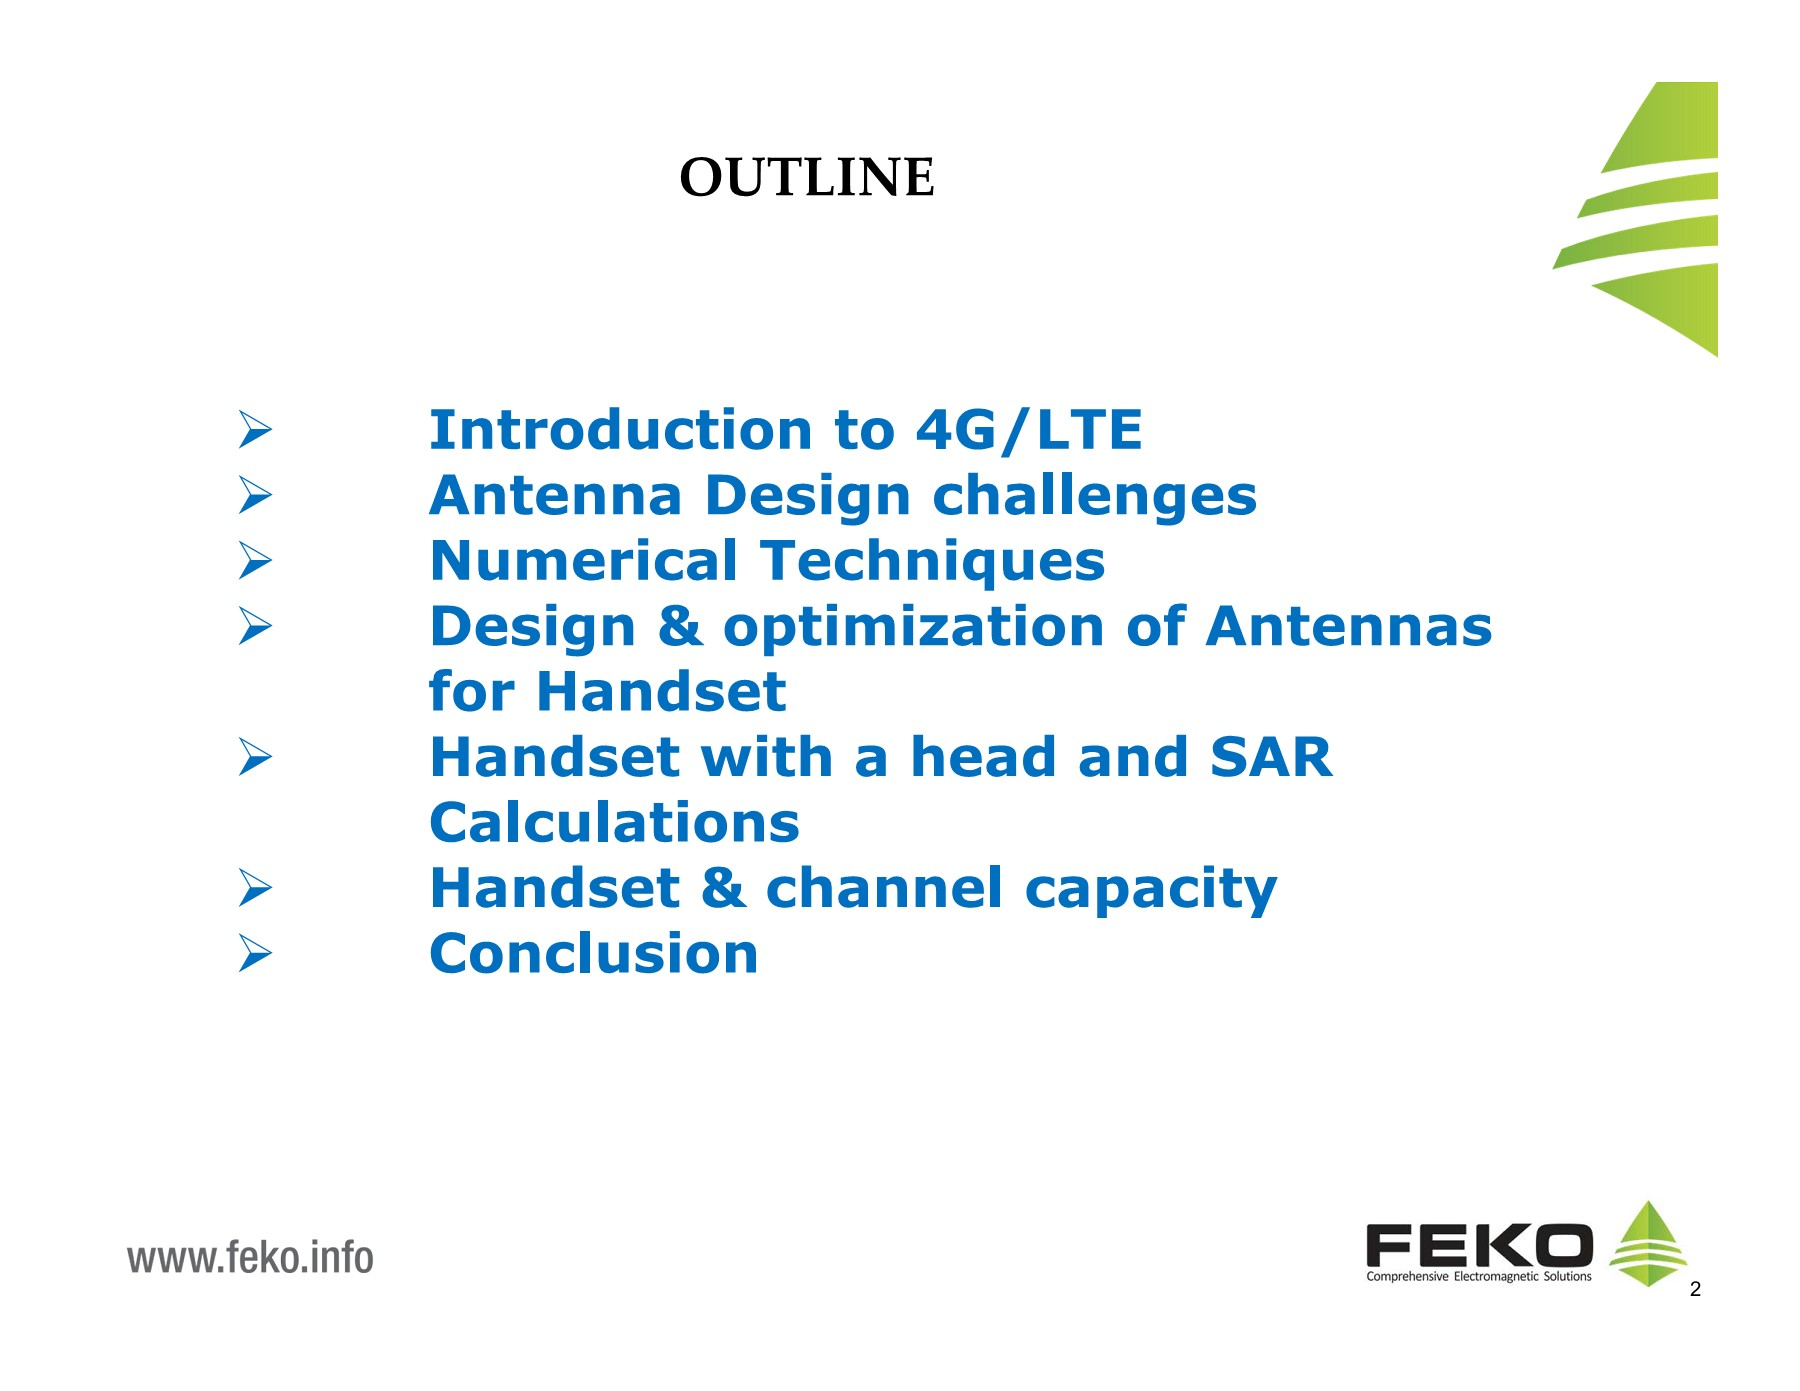 Antenna Design Considerations for LTE Mobile Applications